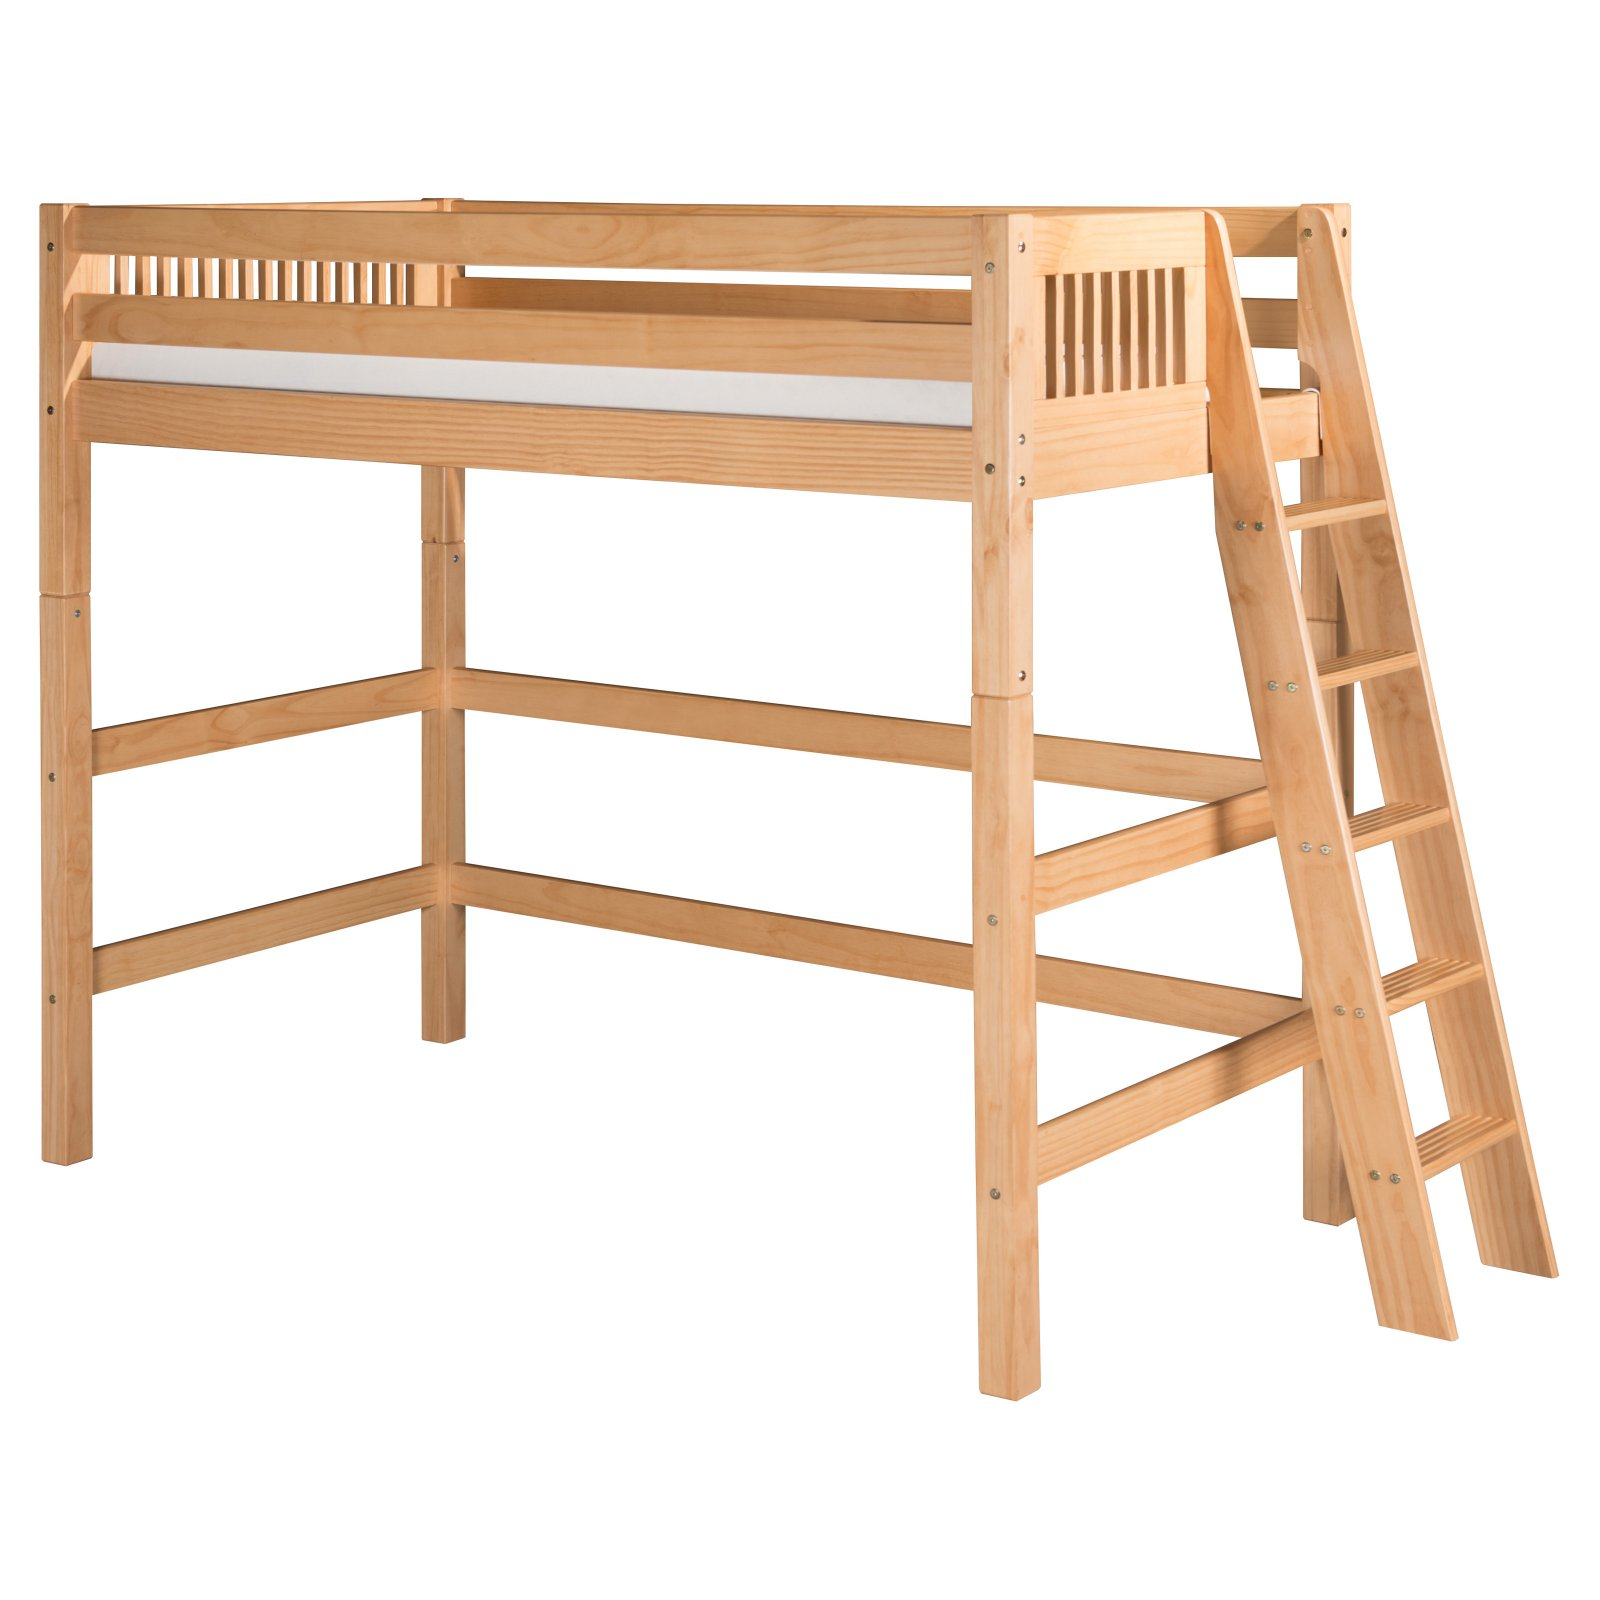 Camaflexi Twin Size High Loft Bed - Mission Headboard - Lateral Ladder - Cappuccino Finish